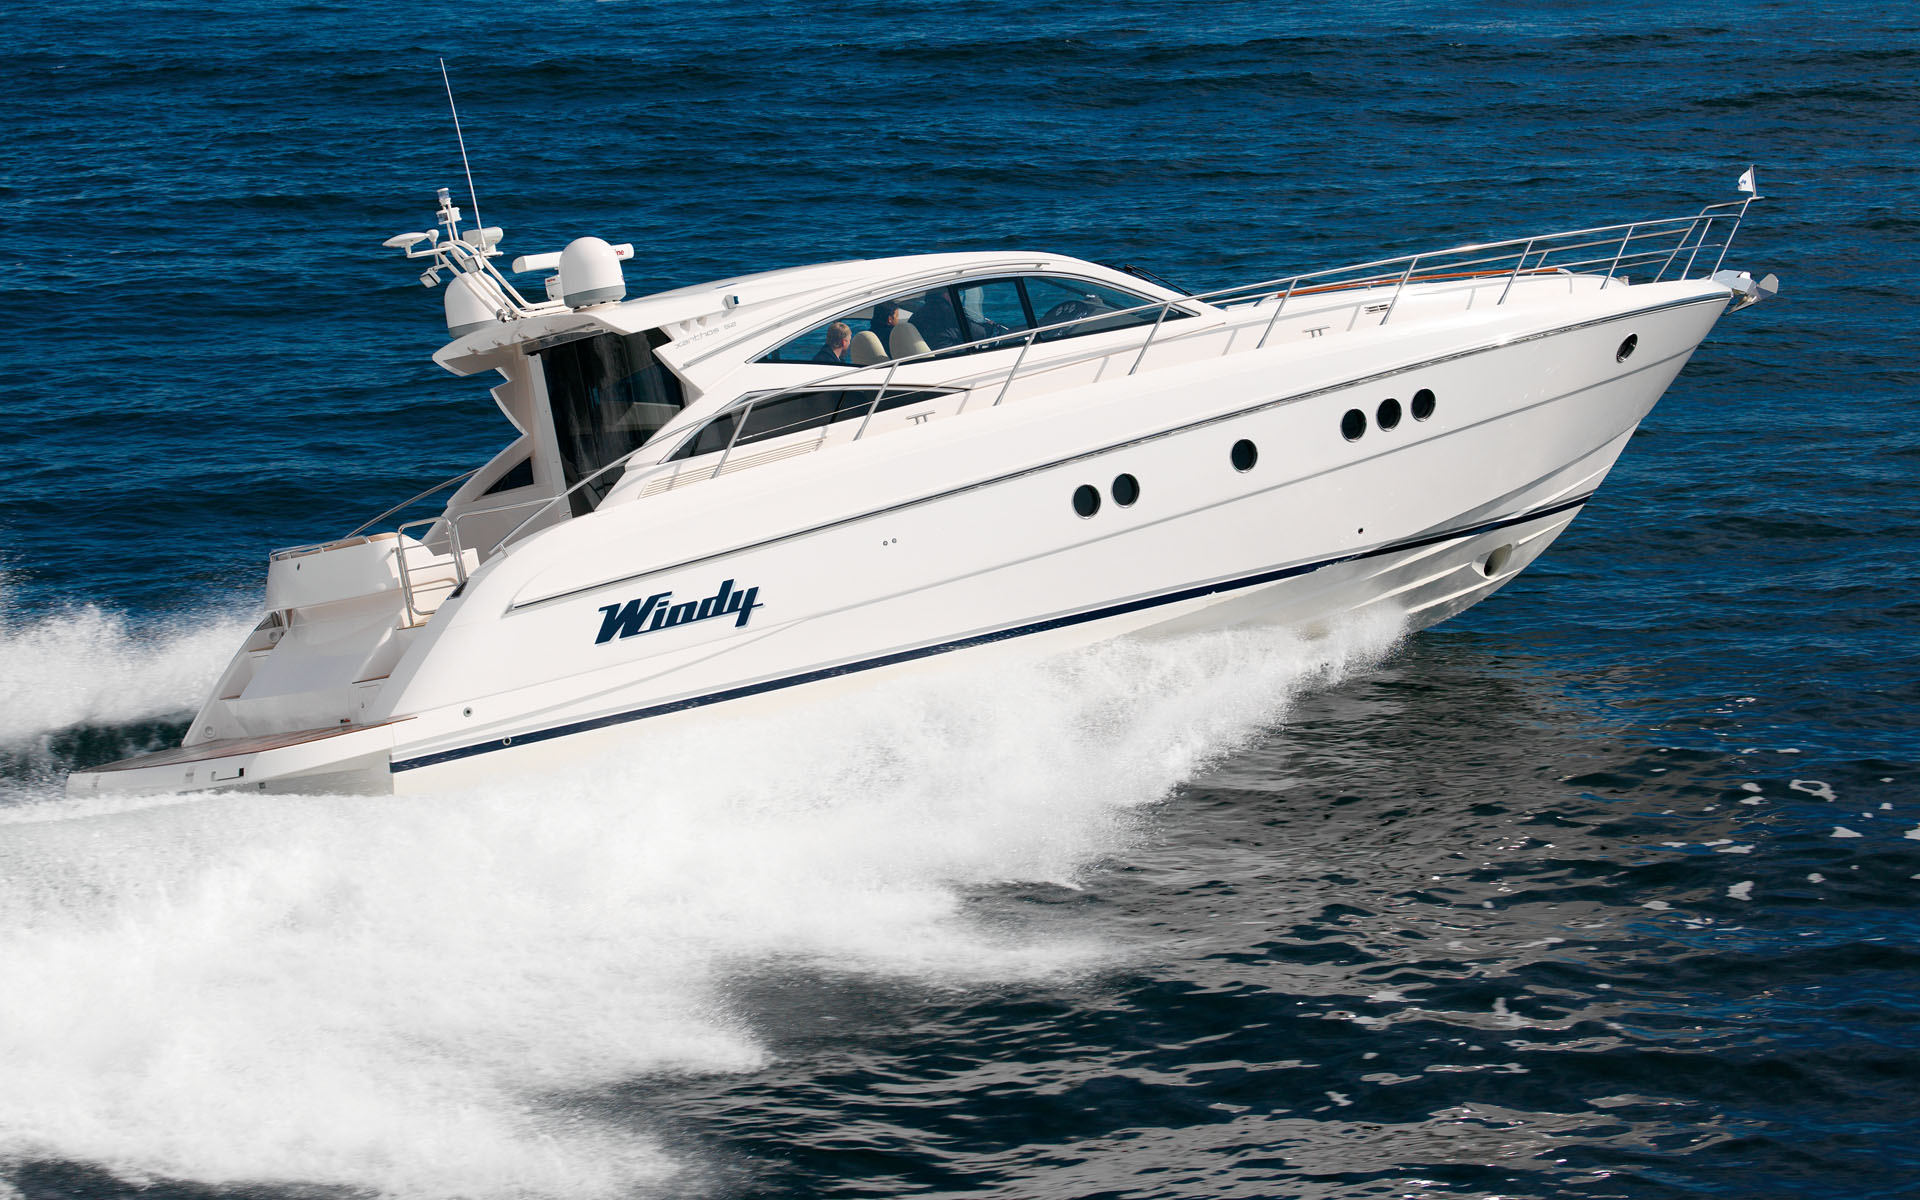 Windy 52 Xanthos World Sports Boats